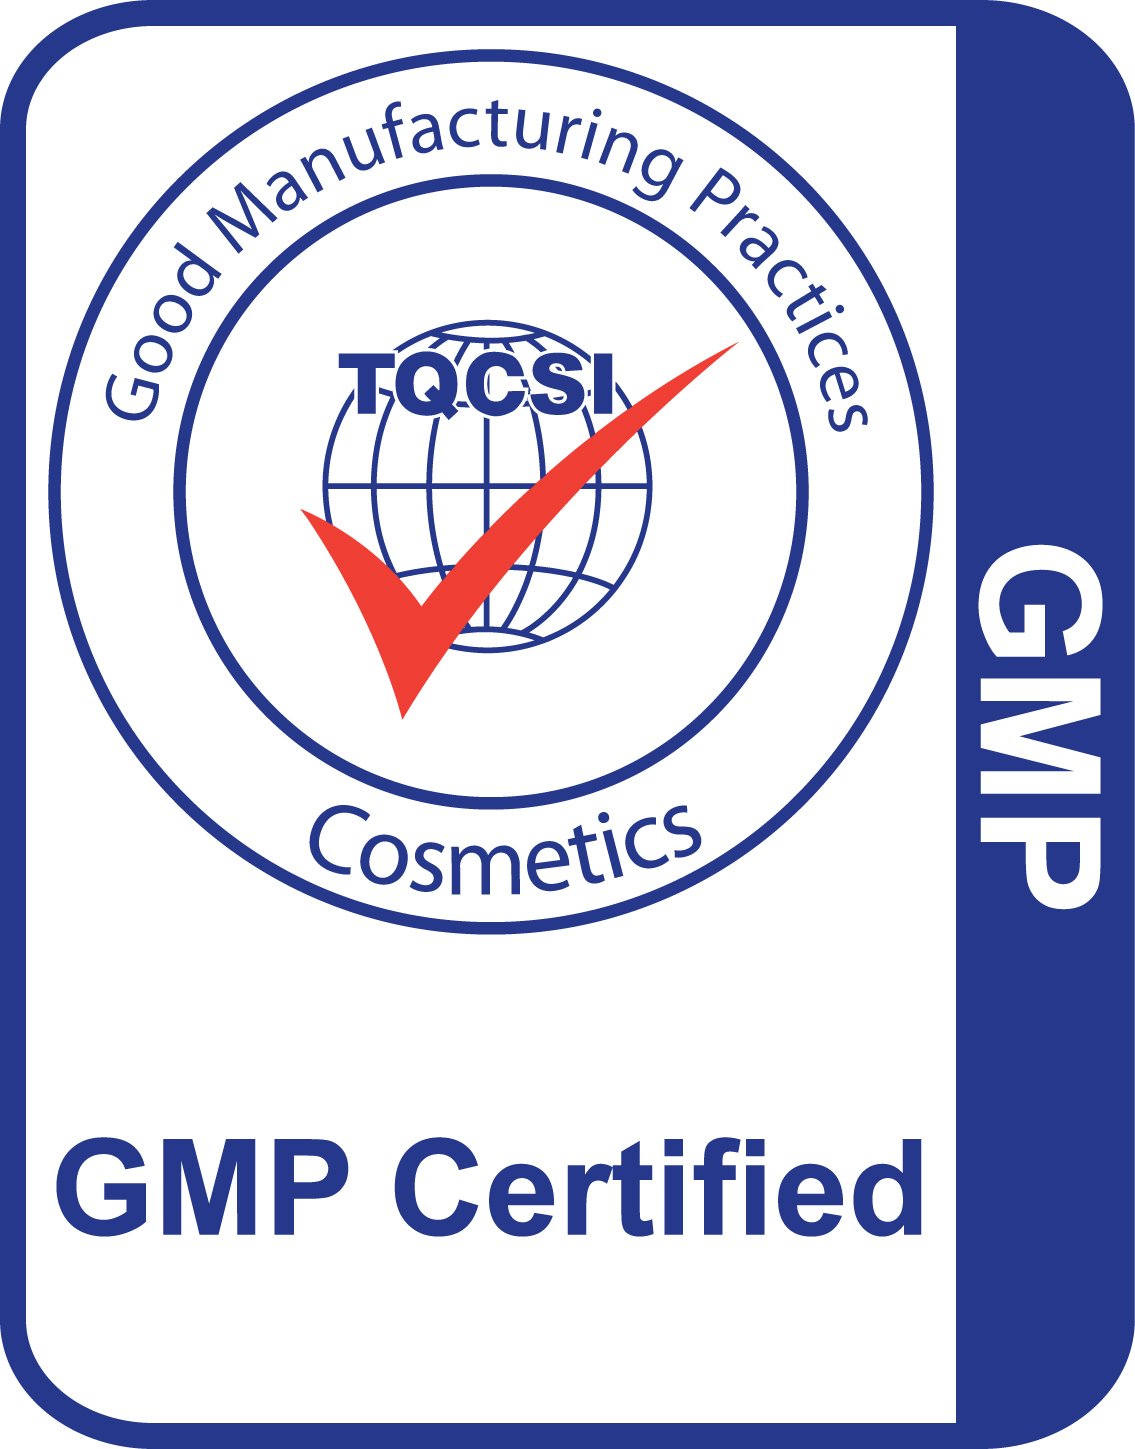 GMP Cosmetics Certification Logo